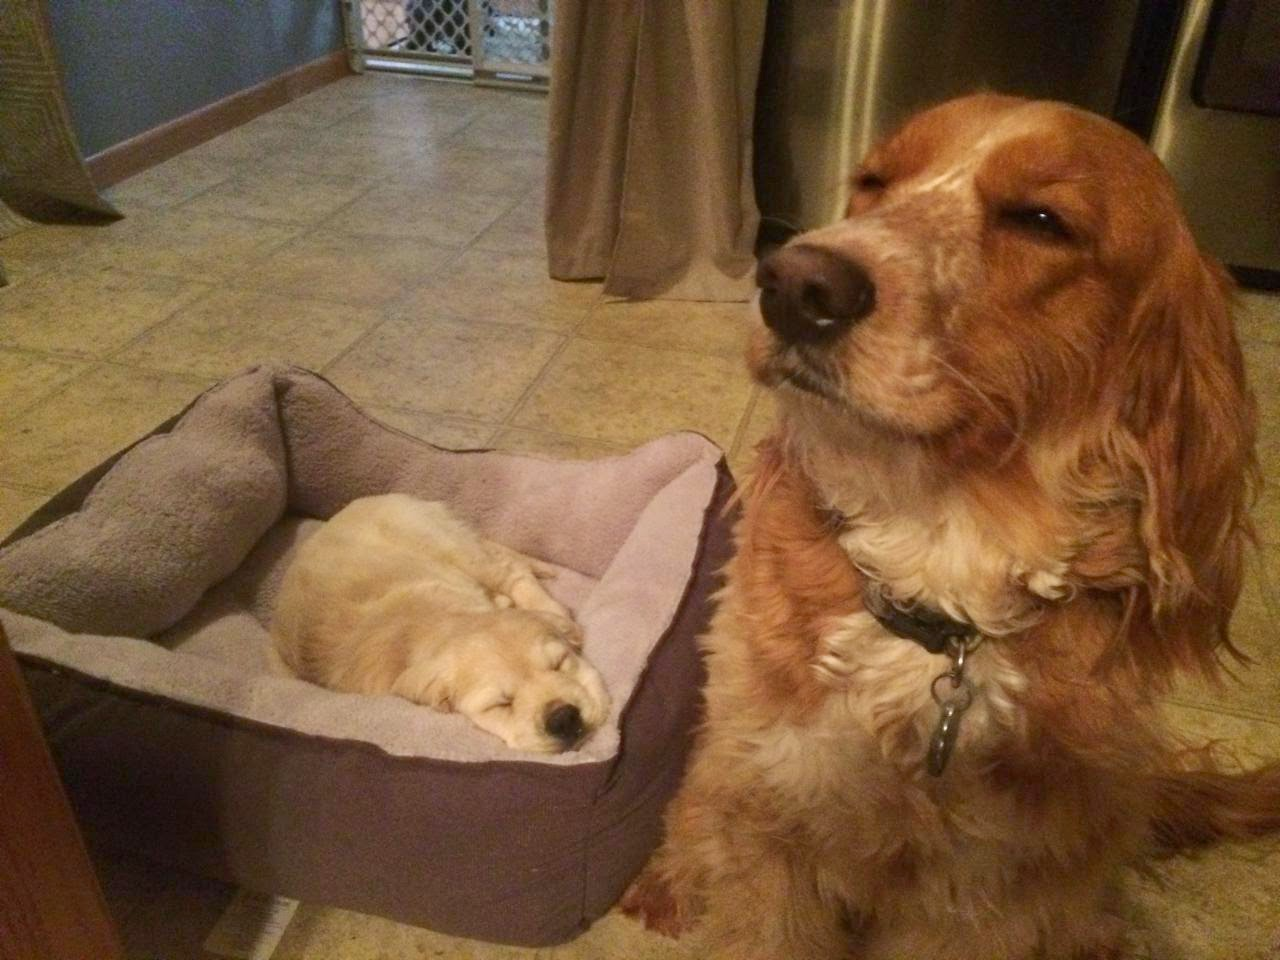 Olaf with his new friend who is a Golden/Cocker, Piper.